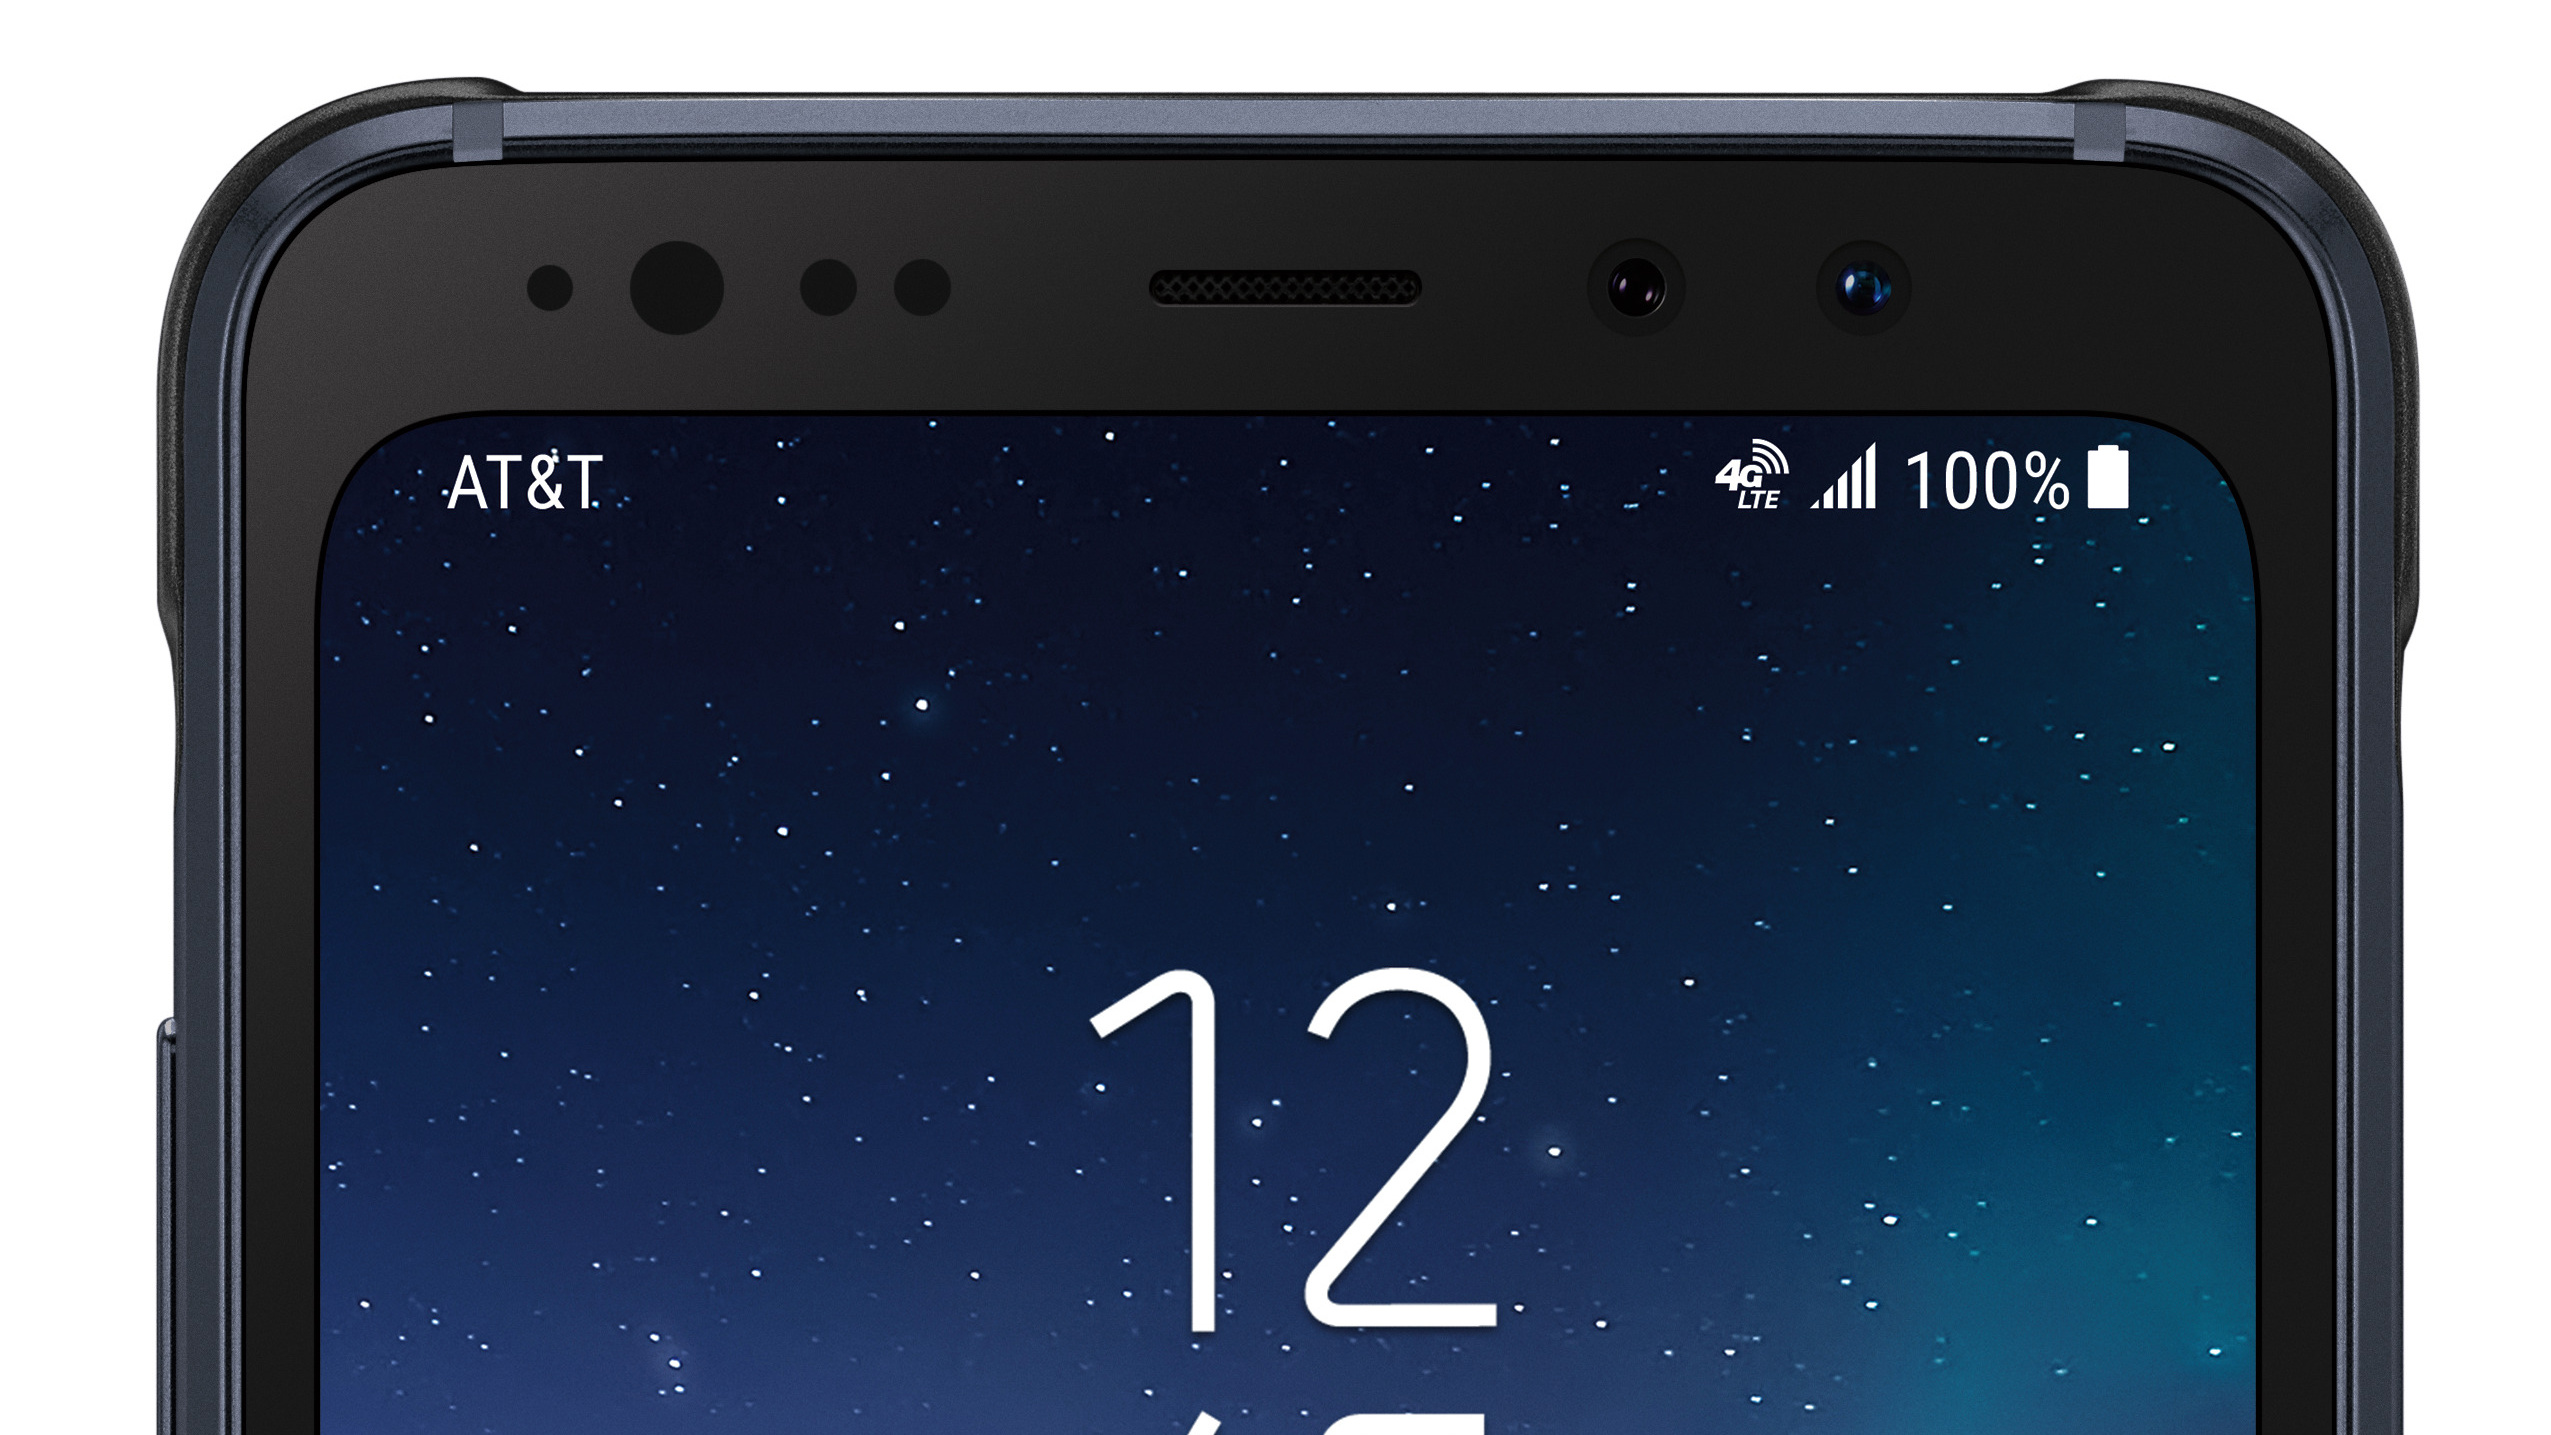 samsung 39 s galaxy s8 active announced for at t pre order availability tomorrow. Black Bedroom Furniture Sets. Home Design Ideas